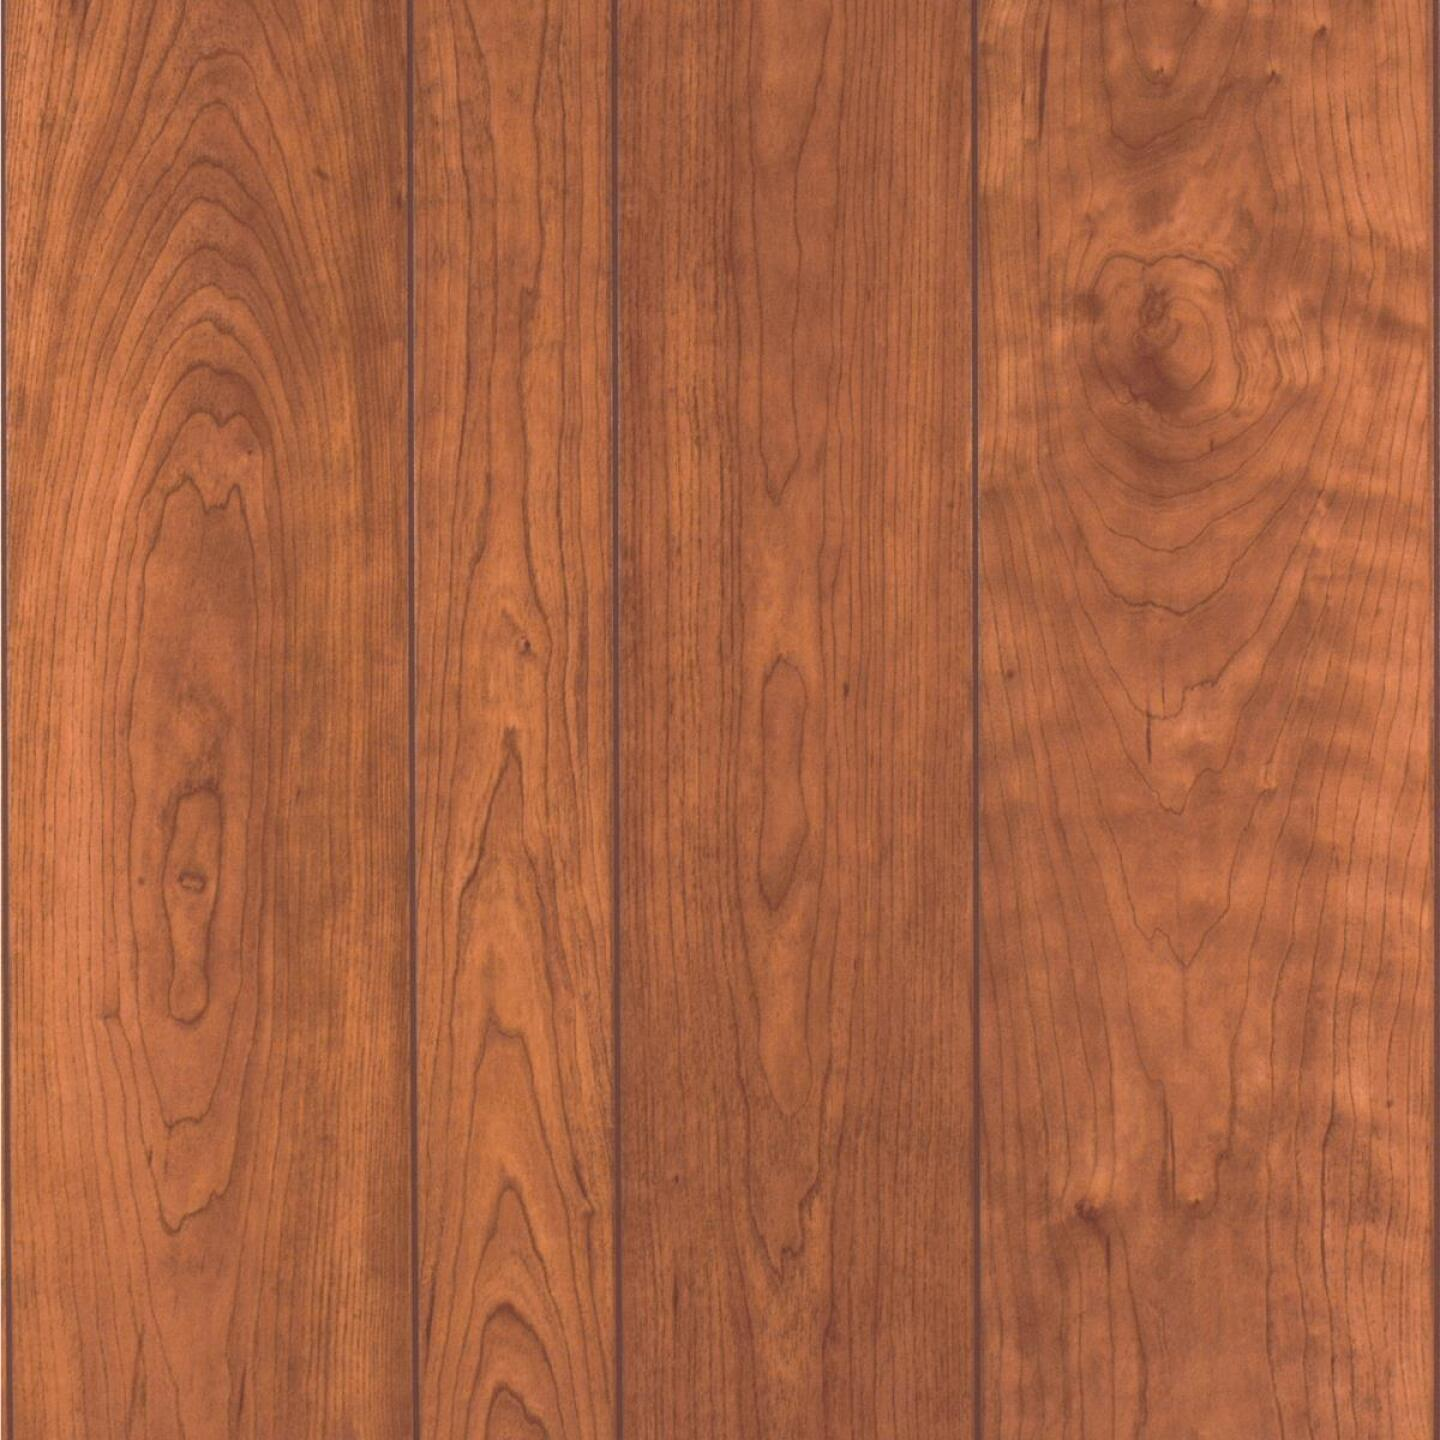 DPI 4 Ft. x 8 Ft. x 1/8 In. Fireside Cherry Woodgrain Wall Paneling Image 1